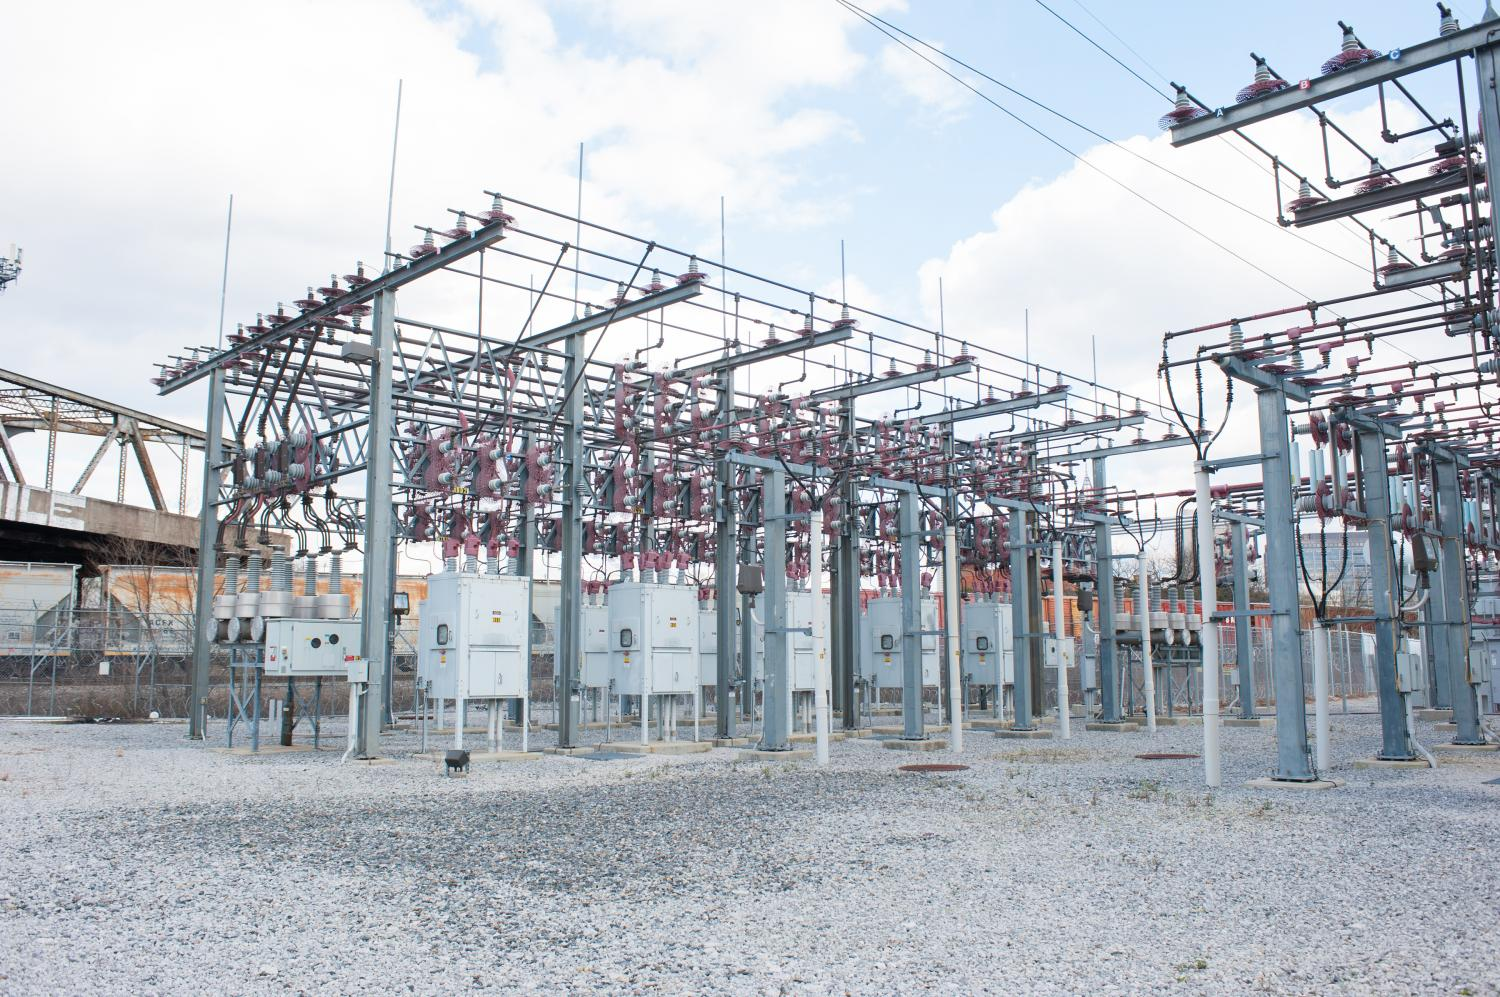 power grid Power grid definition is - a network of electrical transmission lines connecting a multiplicity of generating stations to loads over a wide area.